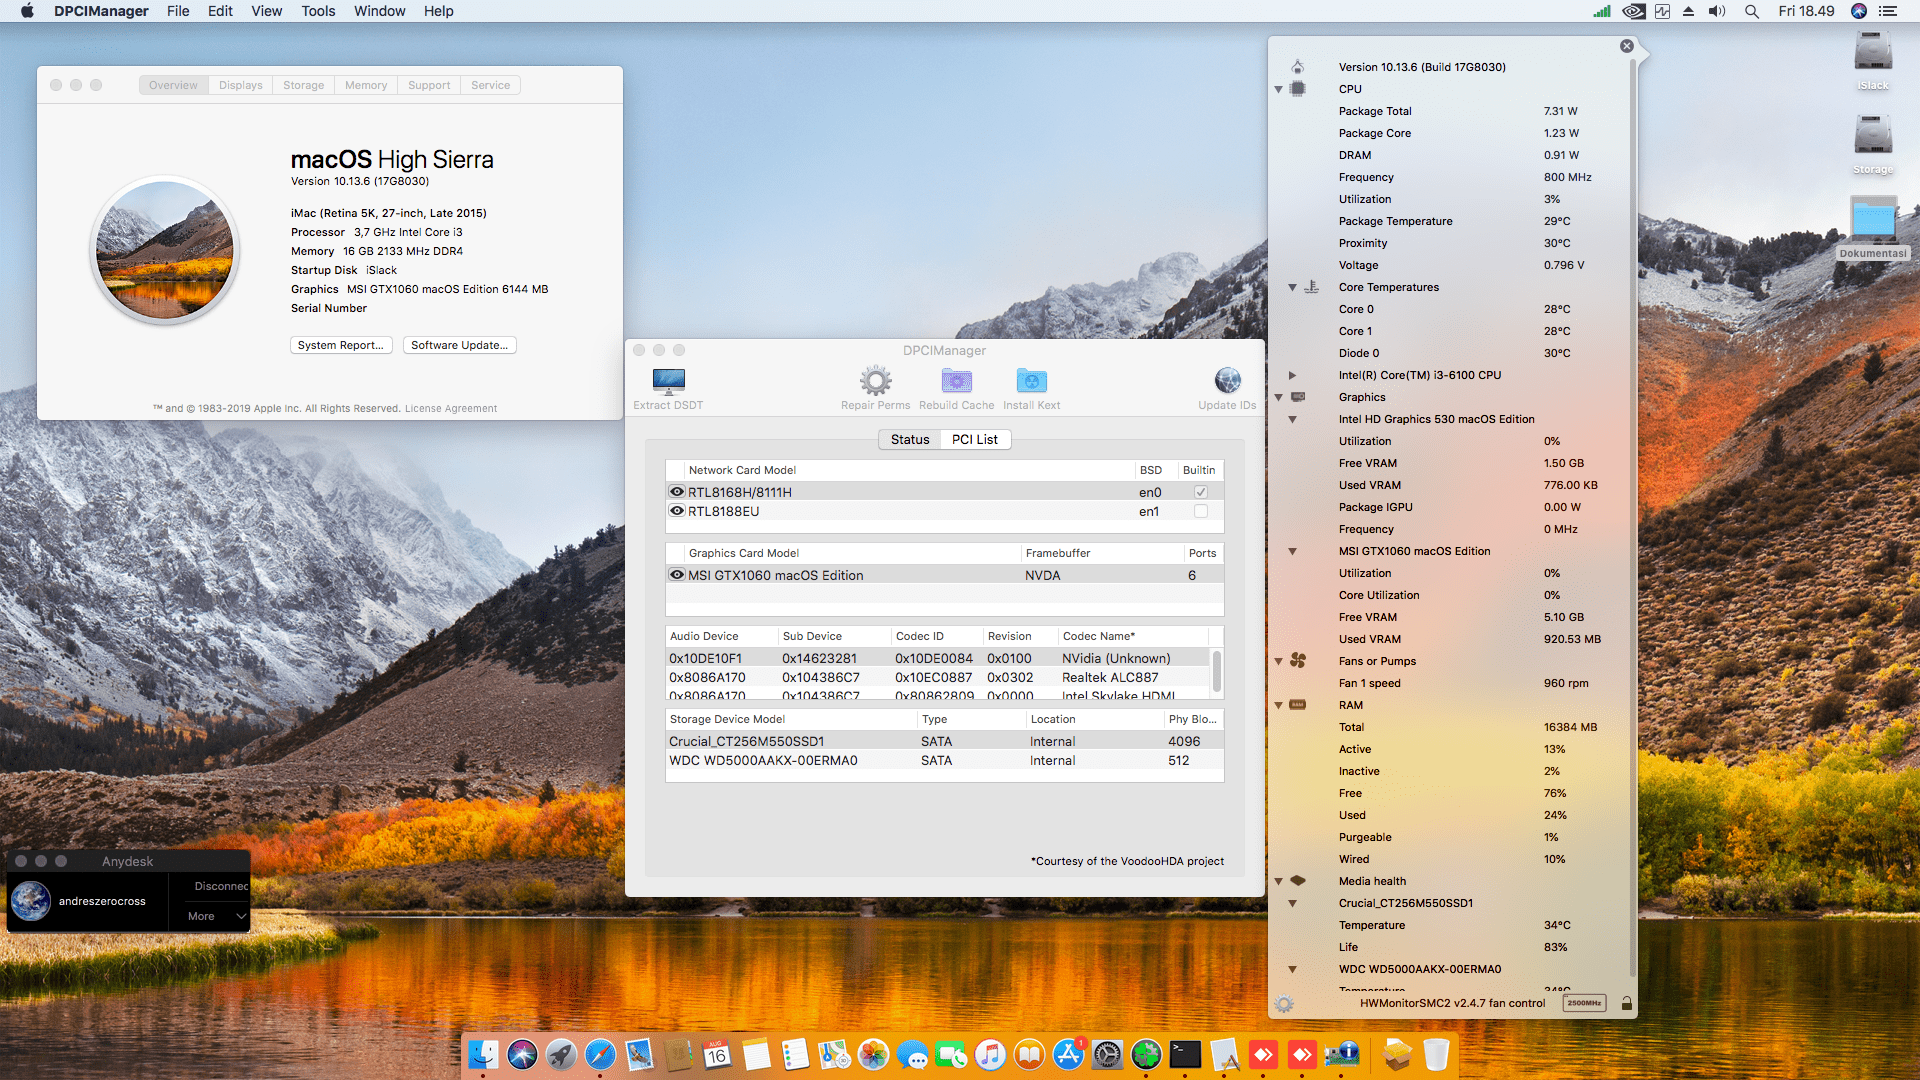 Success Hackintosh macOS High Sierra 10.13.6 Build 17G8030 at Asus B150M-A + Intel Core i3 6100 + MSI GeForce GTX 1060